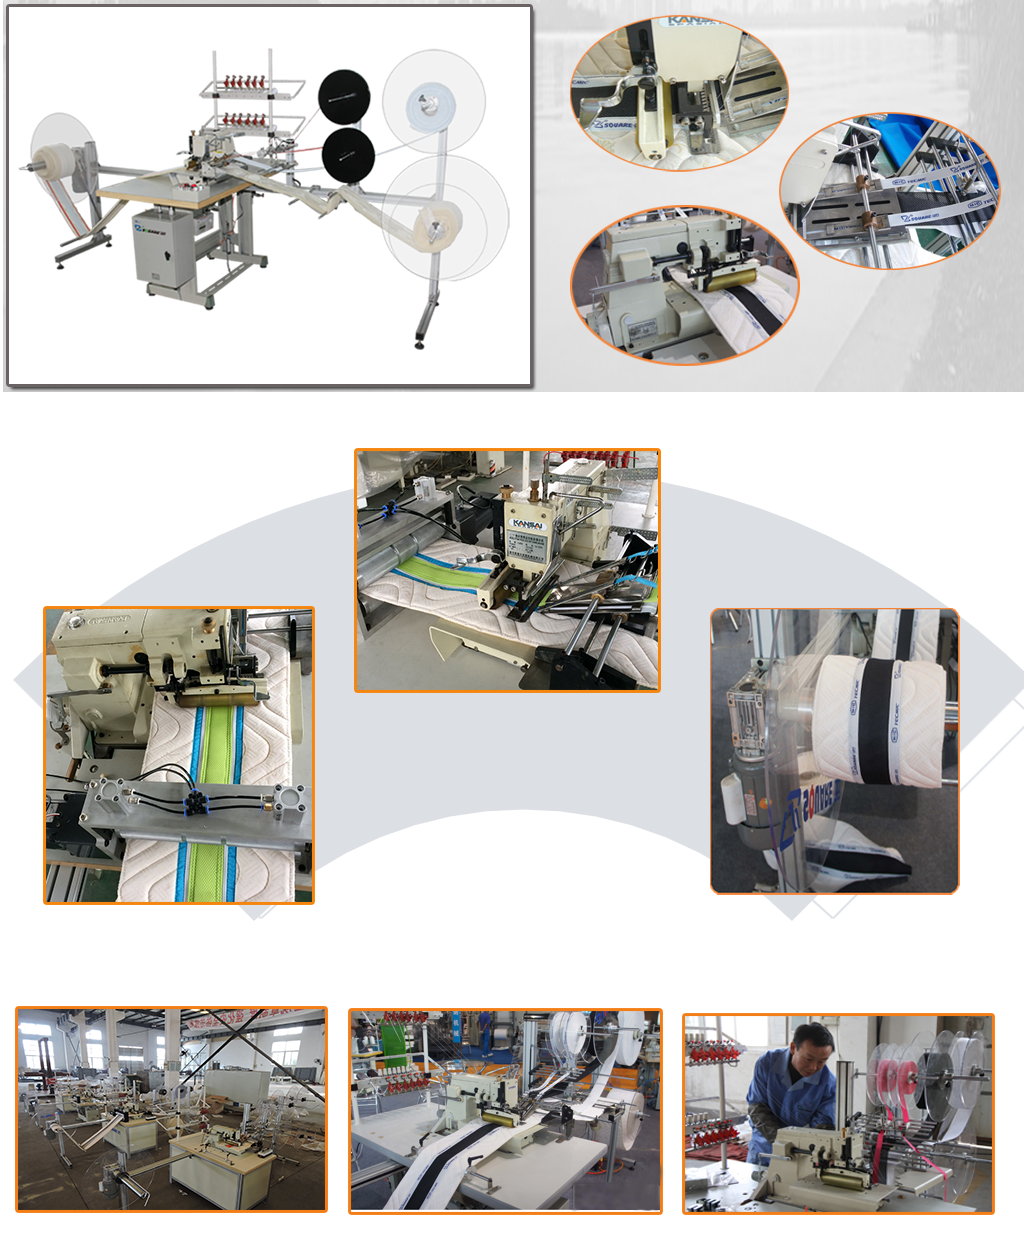 CTF4 mattress decorative ribbon machine details